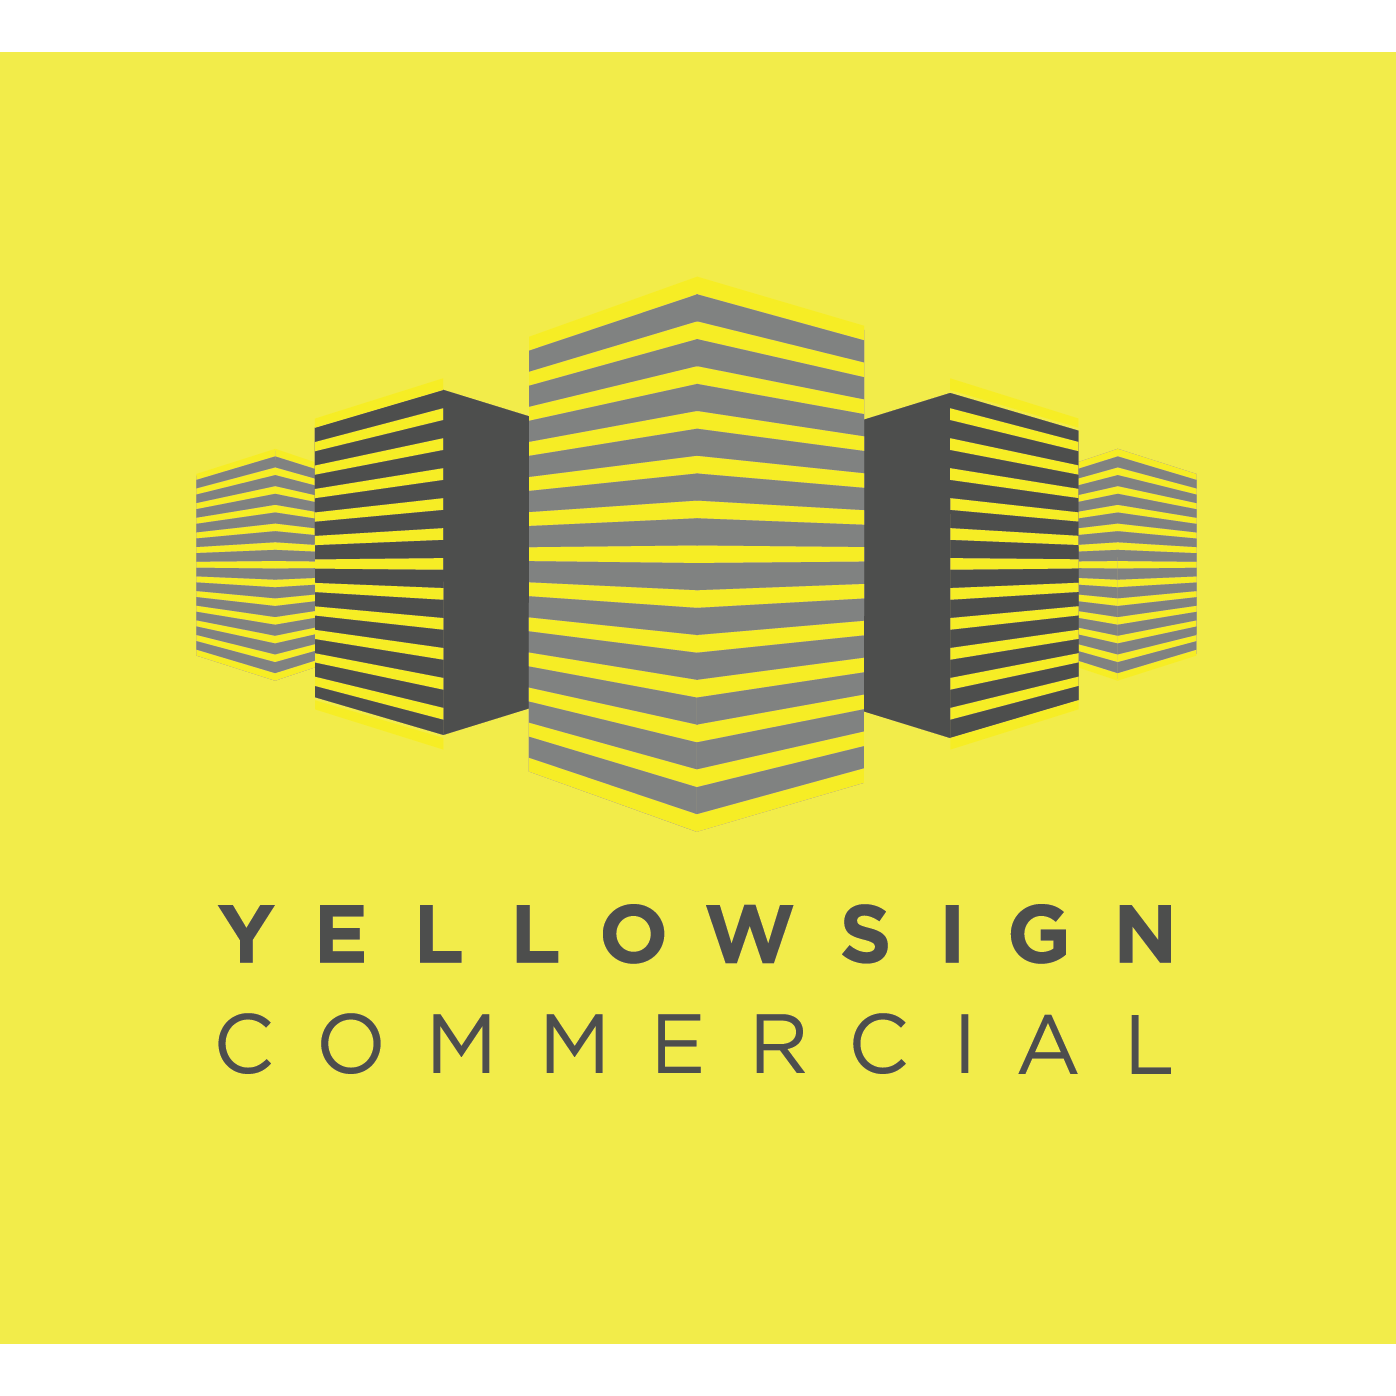 Yellow Sign Commercial